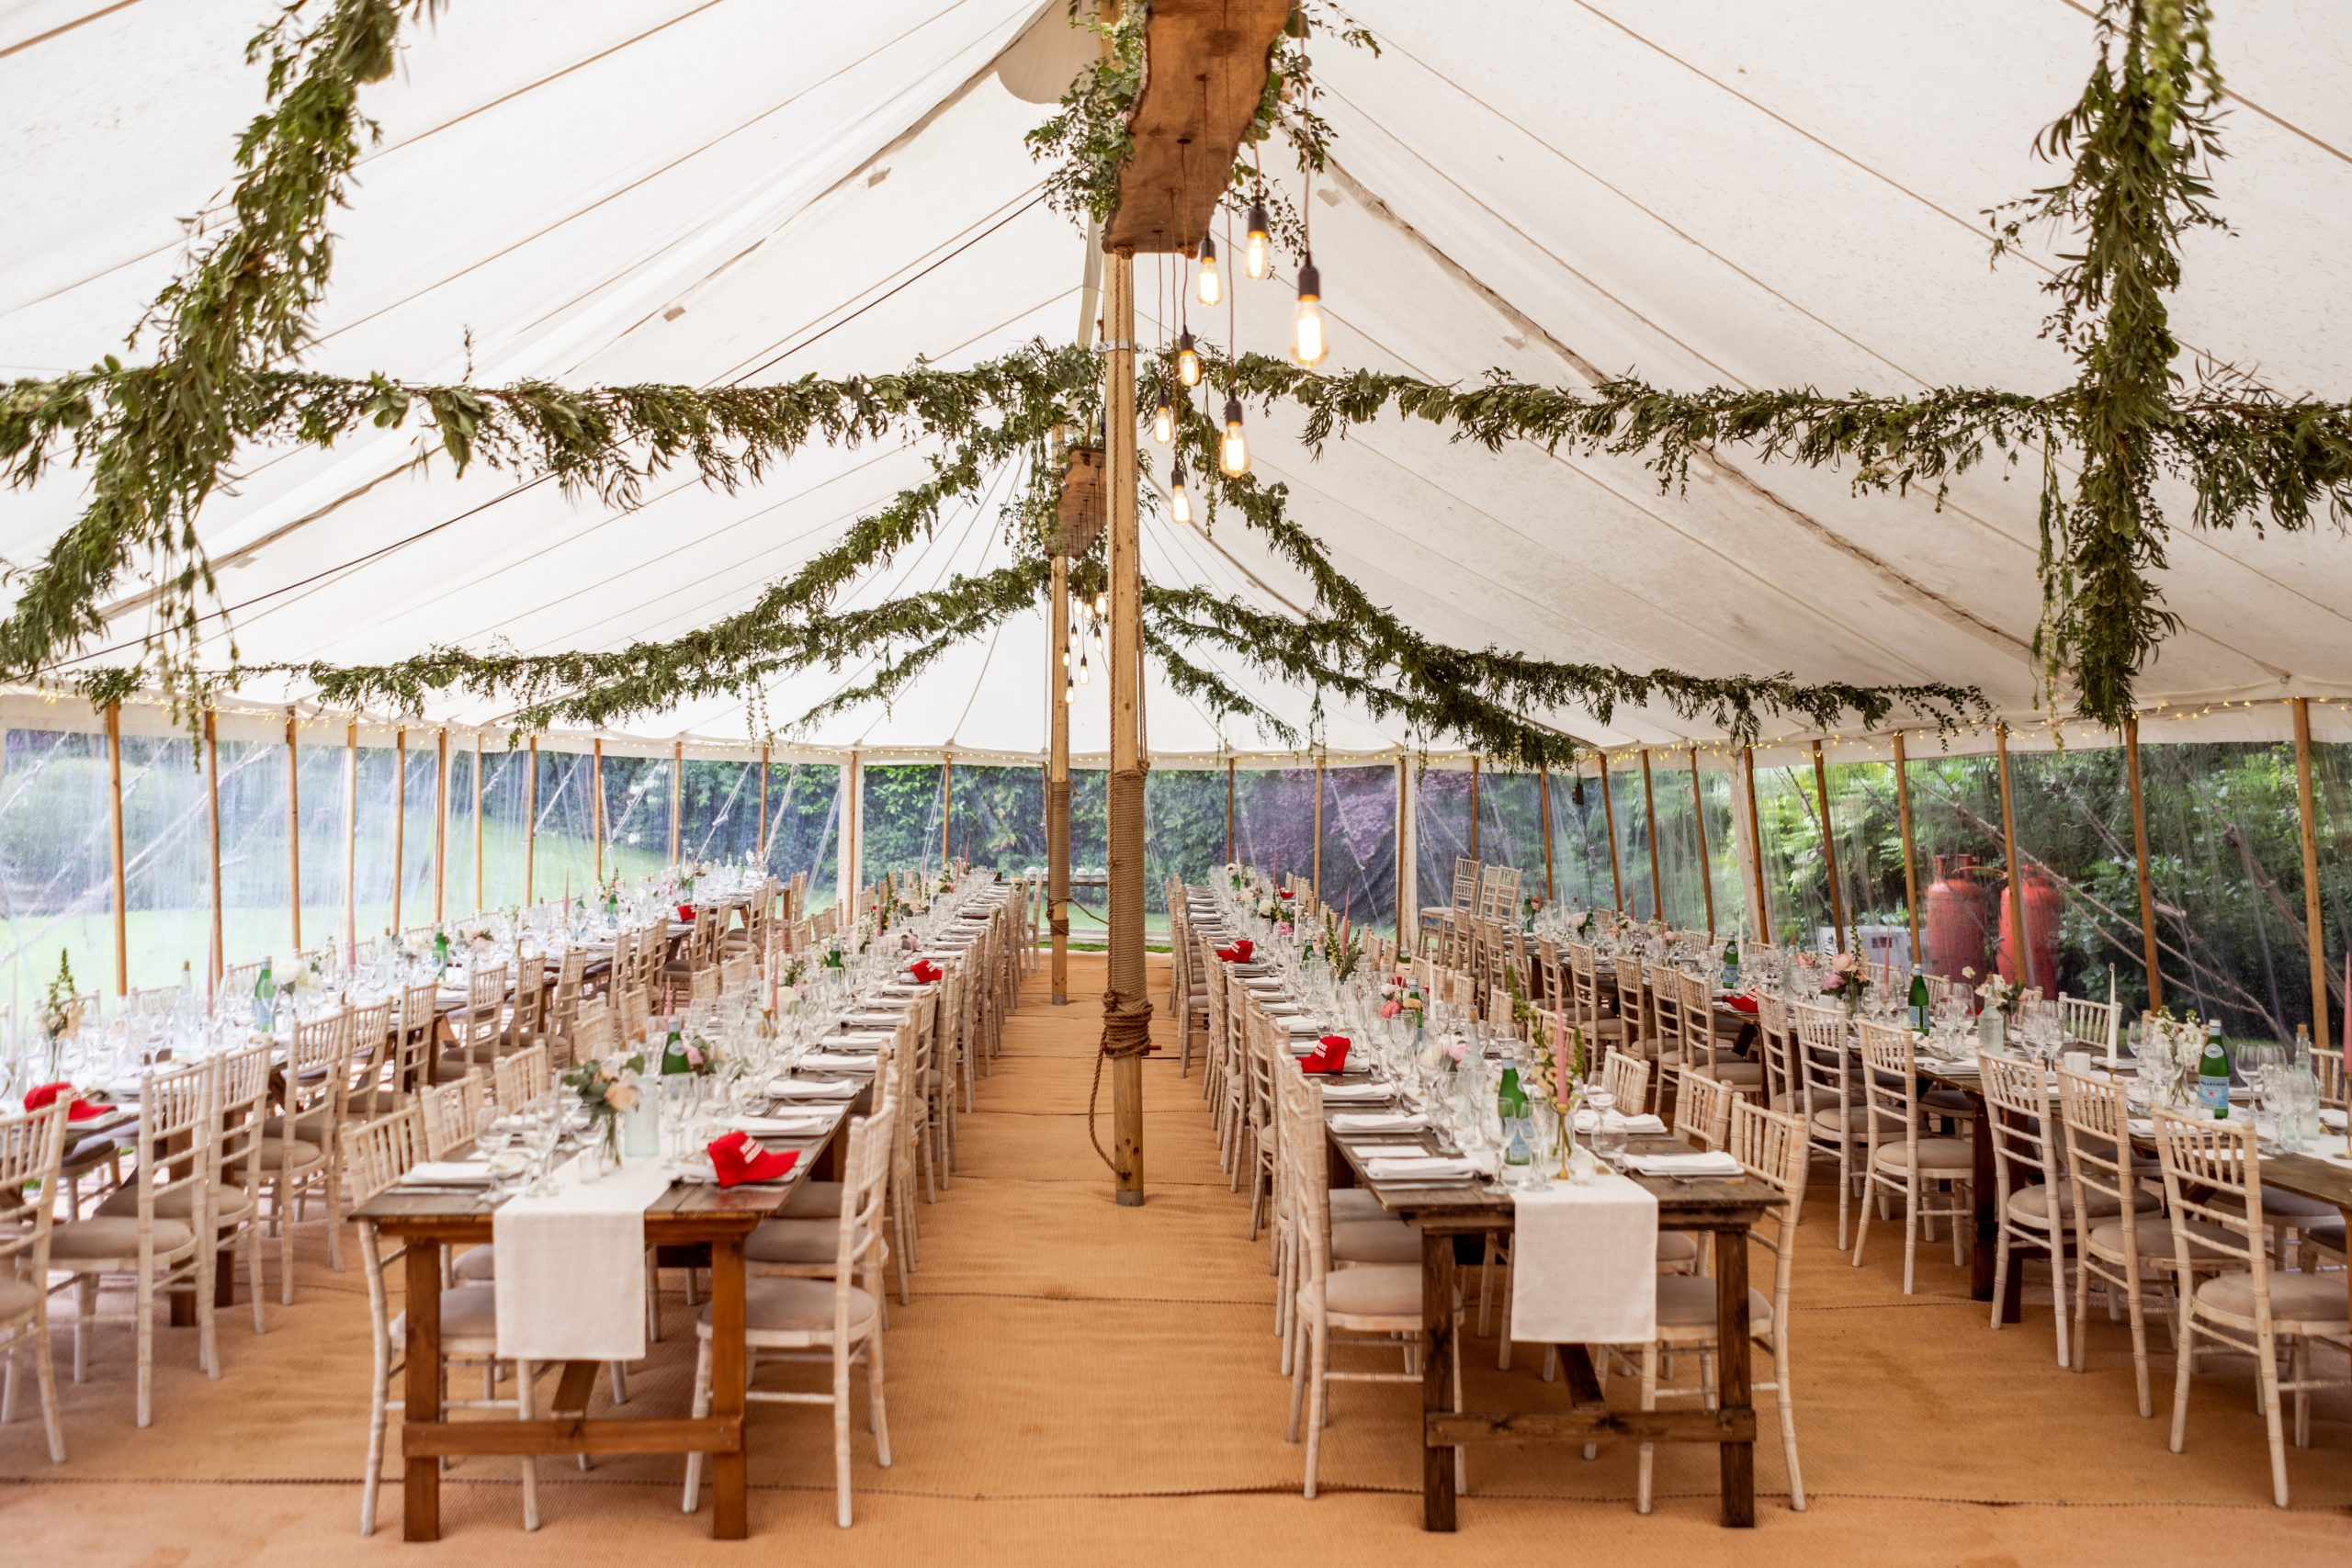 9m x 30m round ended marquee interior - Allister Freeman photographer